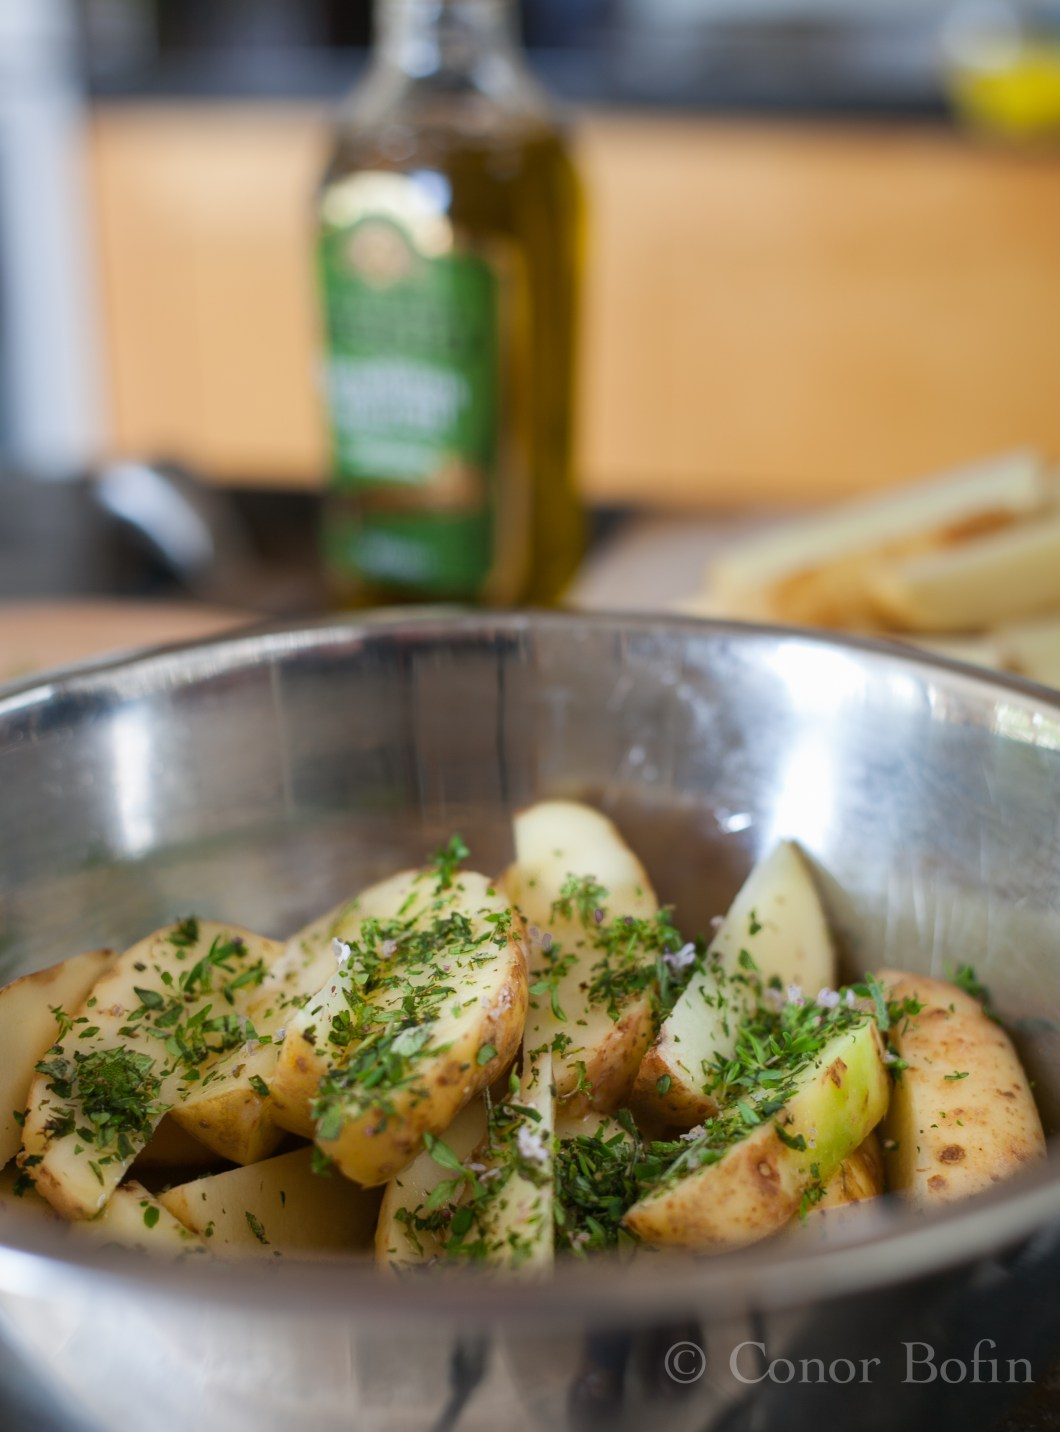 Potato wedges with herbs